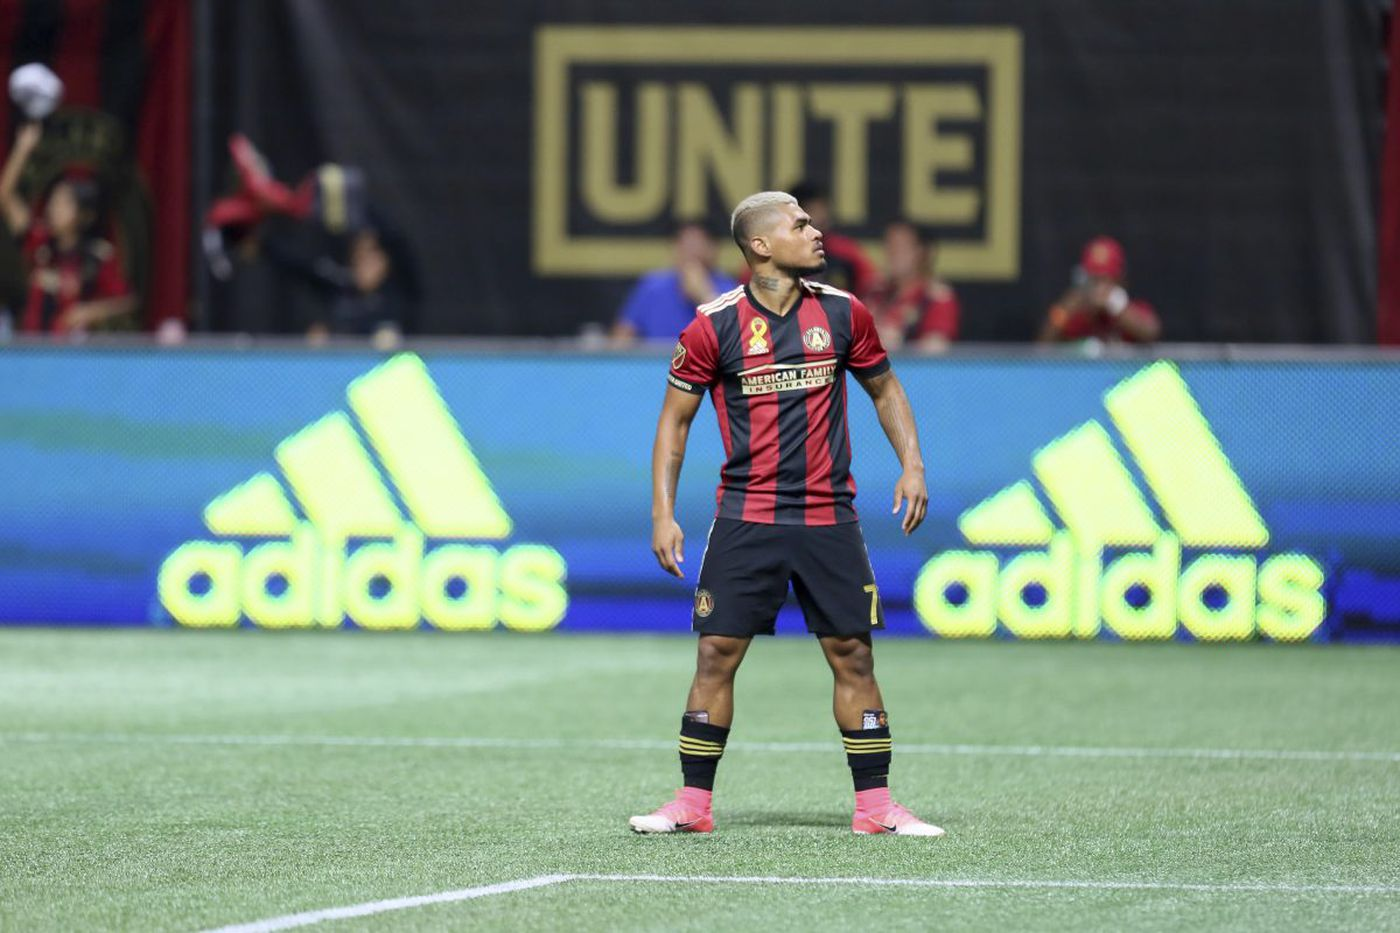 Union bracing for 'intimidation and chaos' at Atlanta United